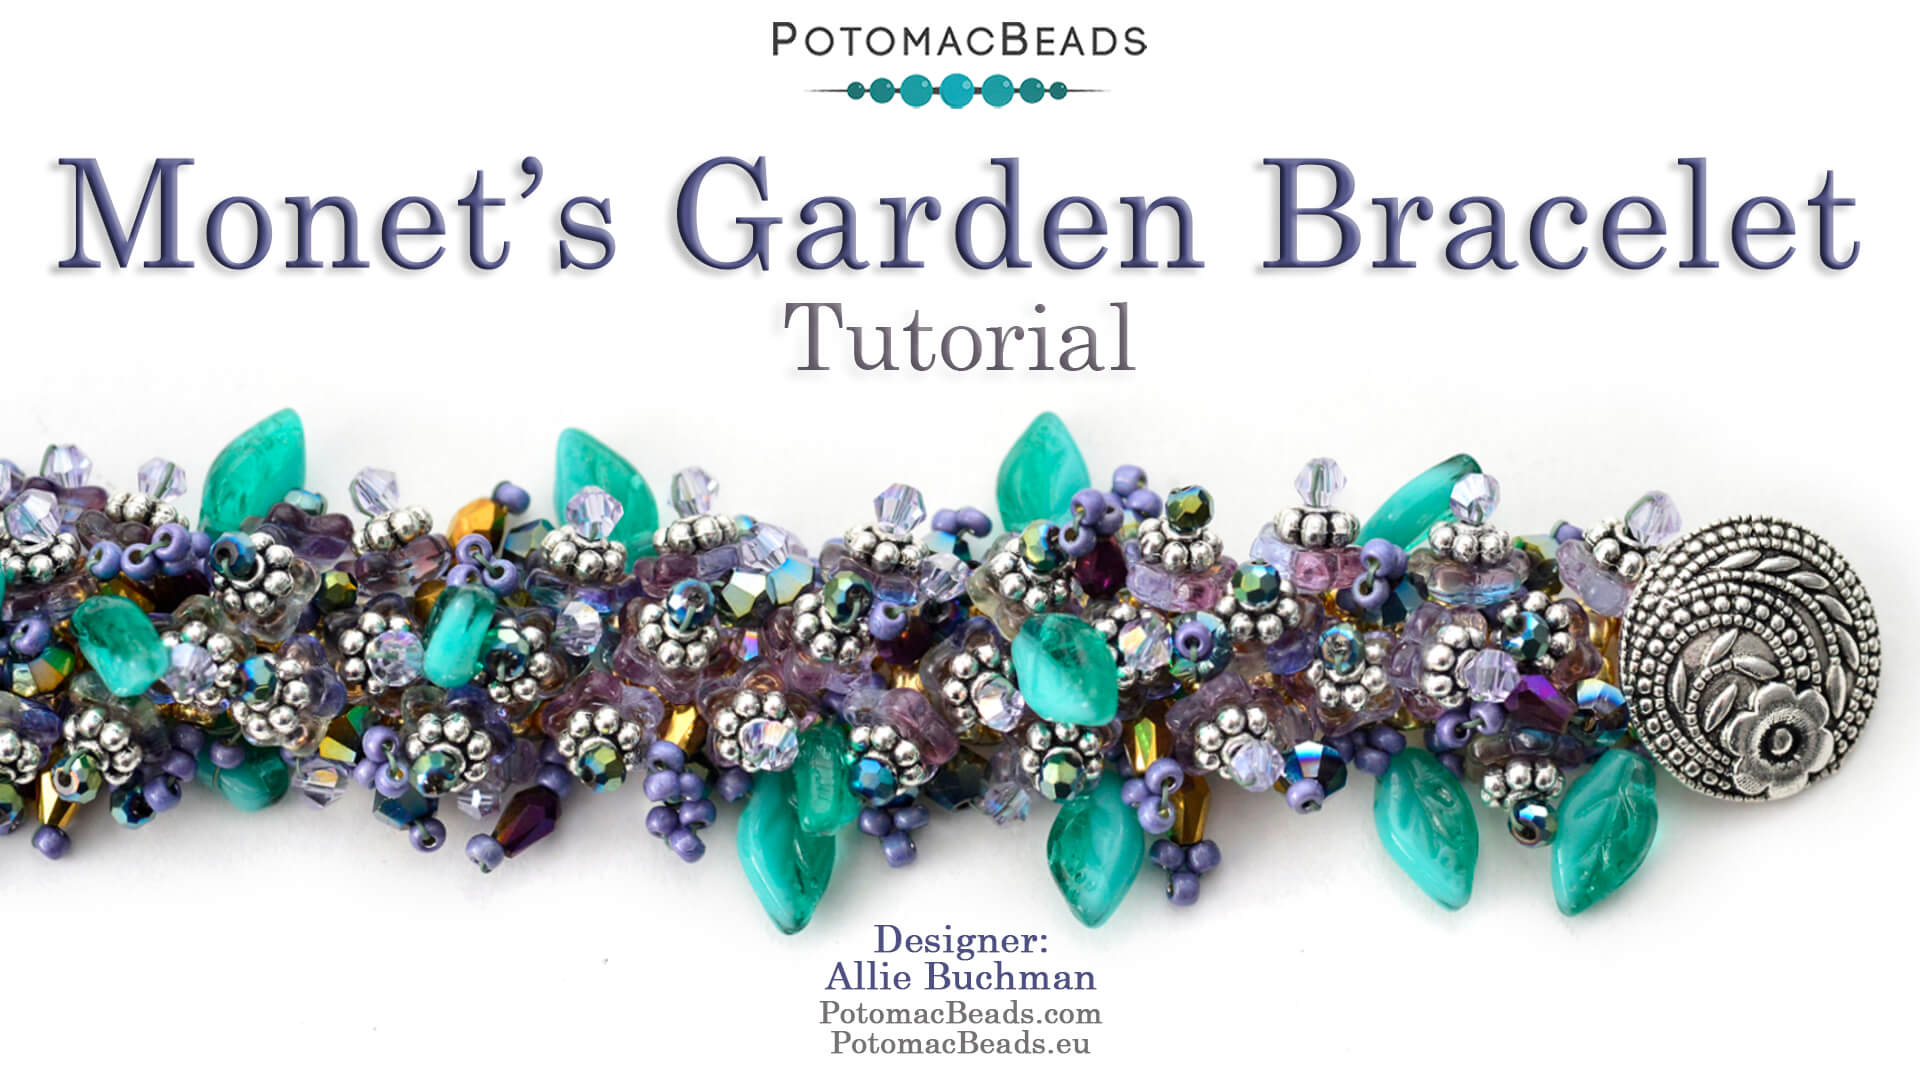 How to Bead Jewelry / Videos Sorted by Beads / All Other Bead Videos / Monet's Garden Bracelet Tutorial